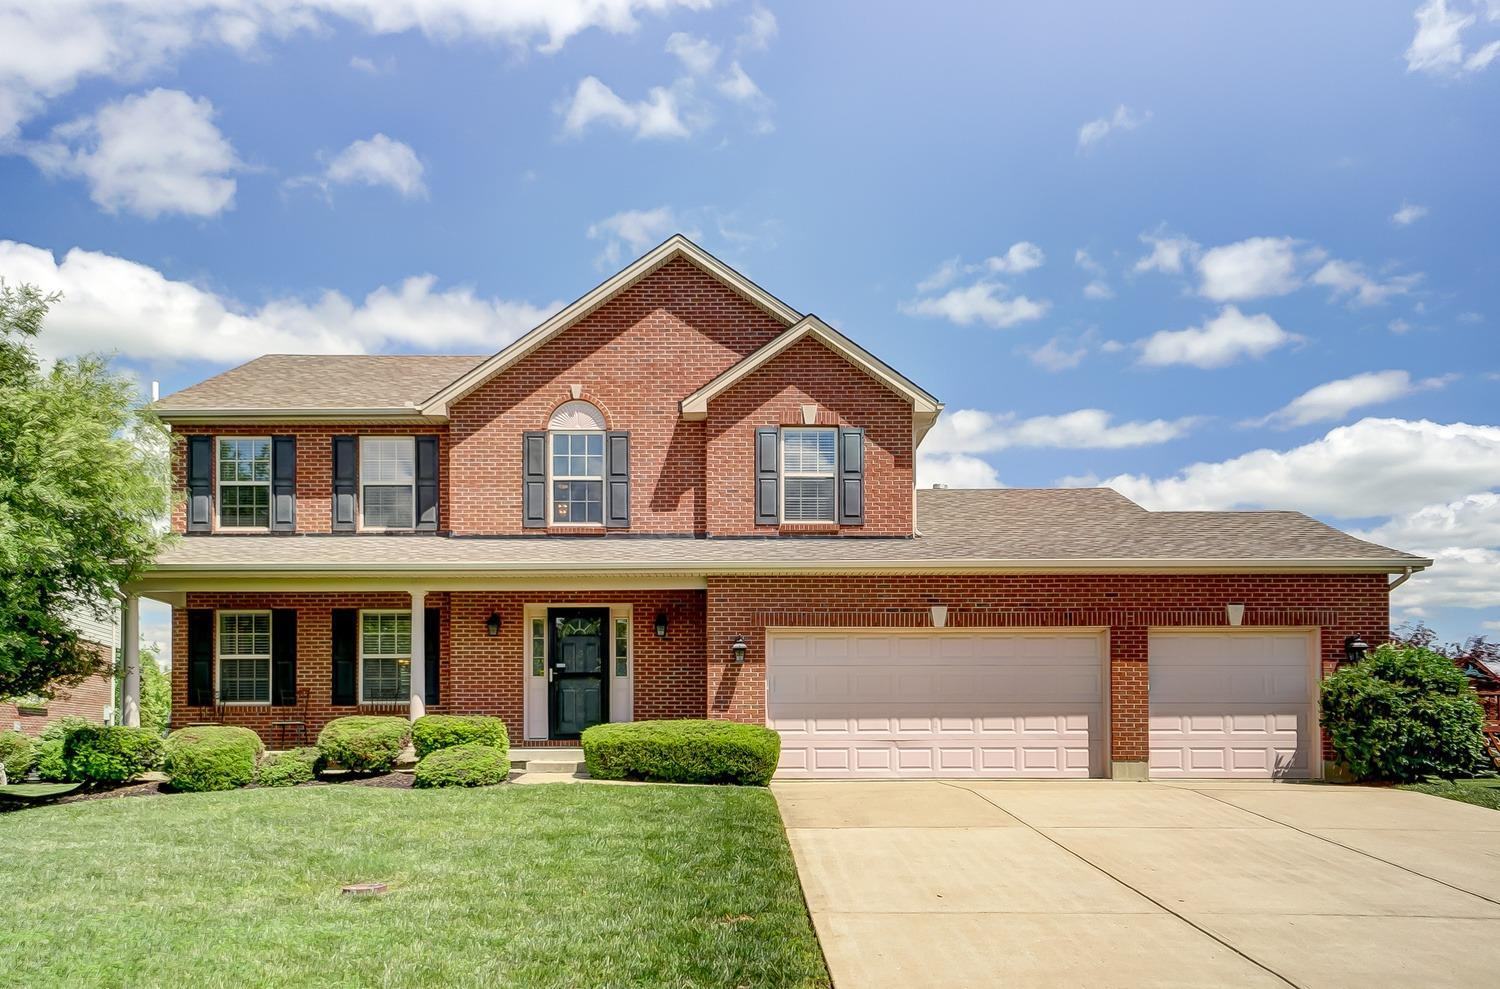 7822 New England Court, West Chester, OH 45069 - MLS #1623119